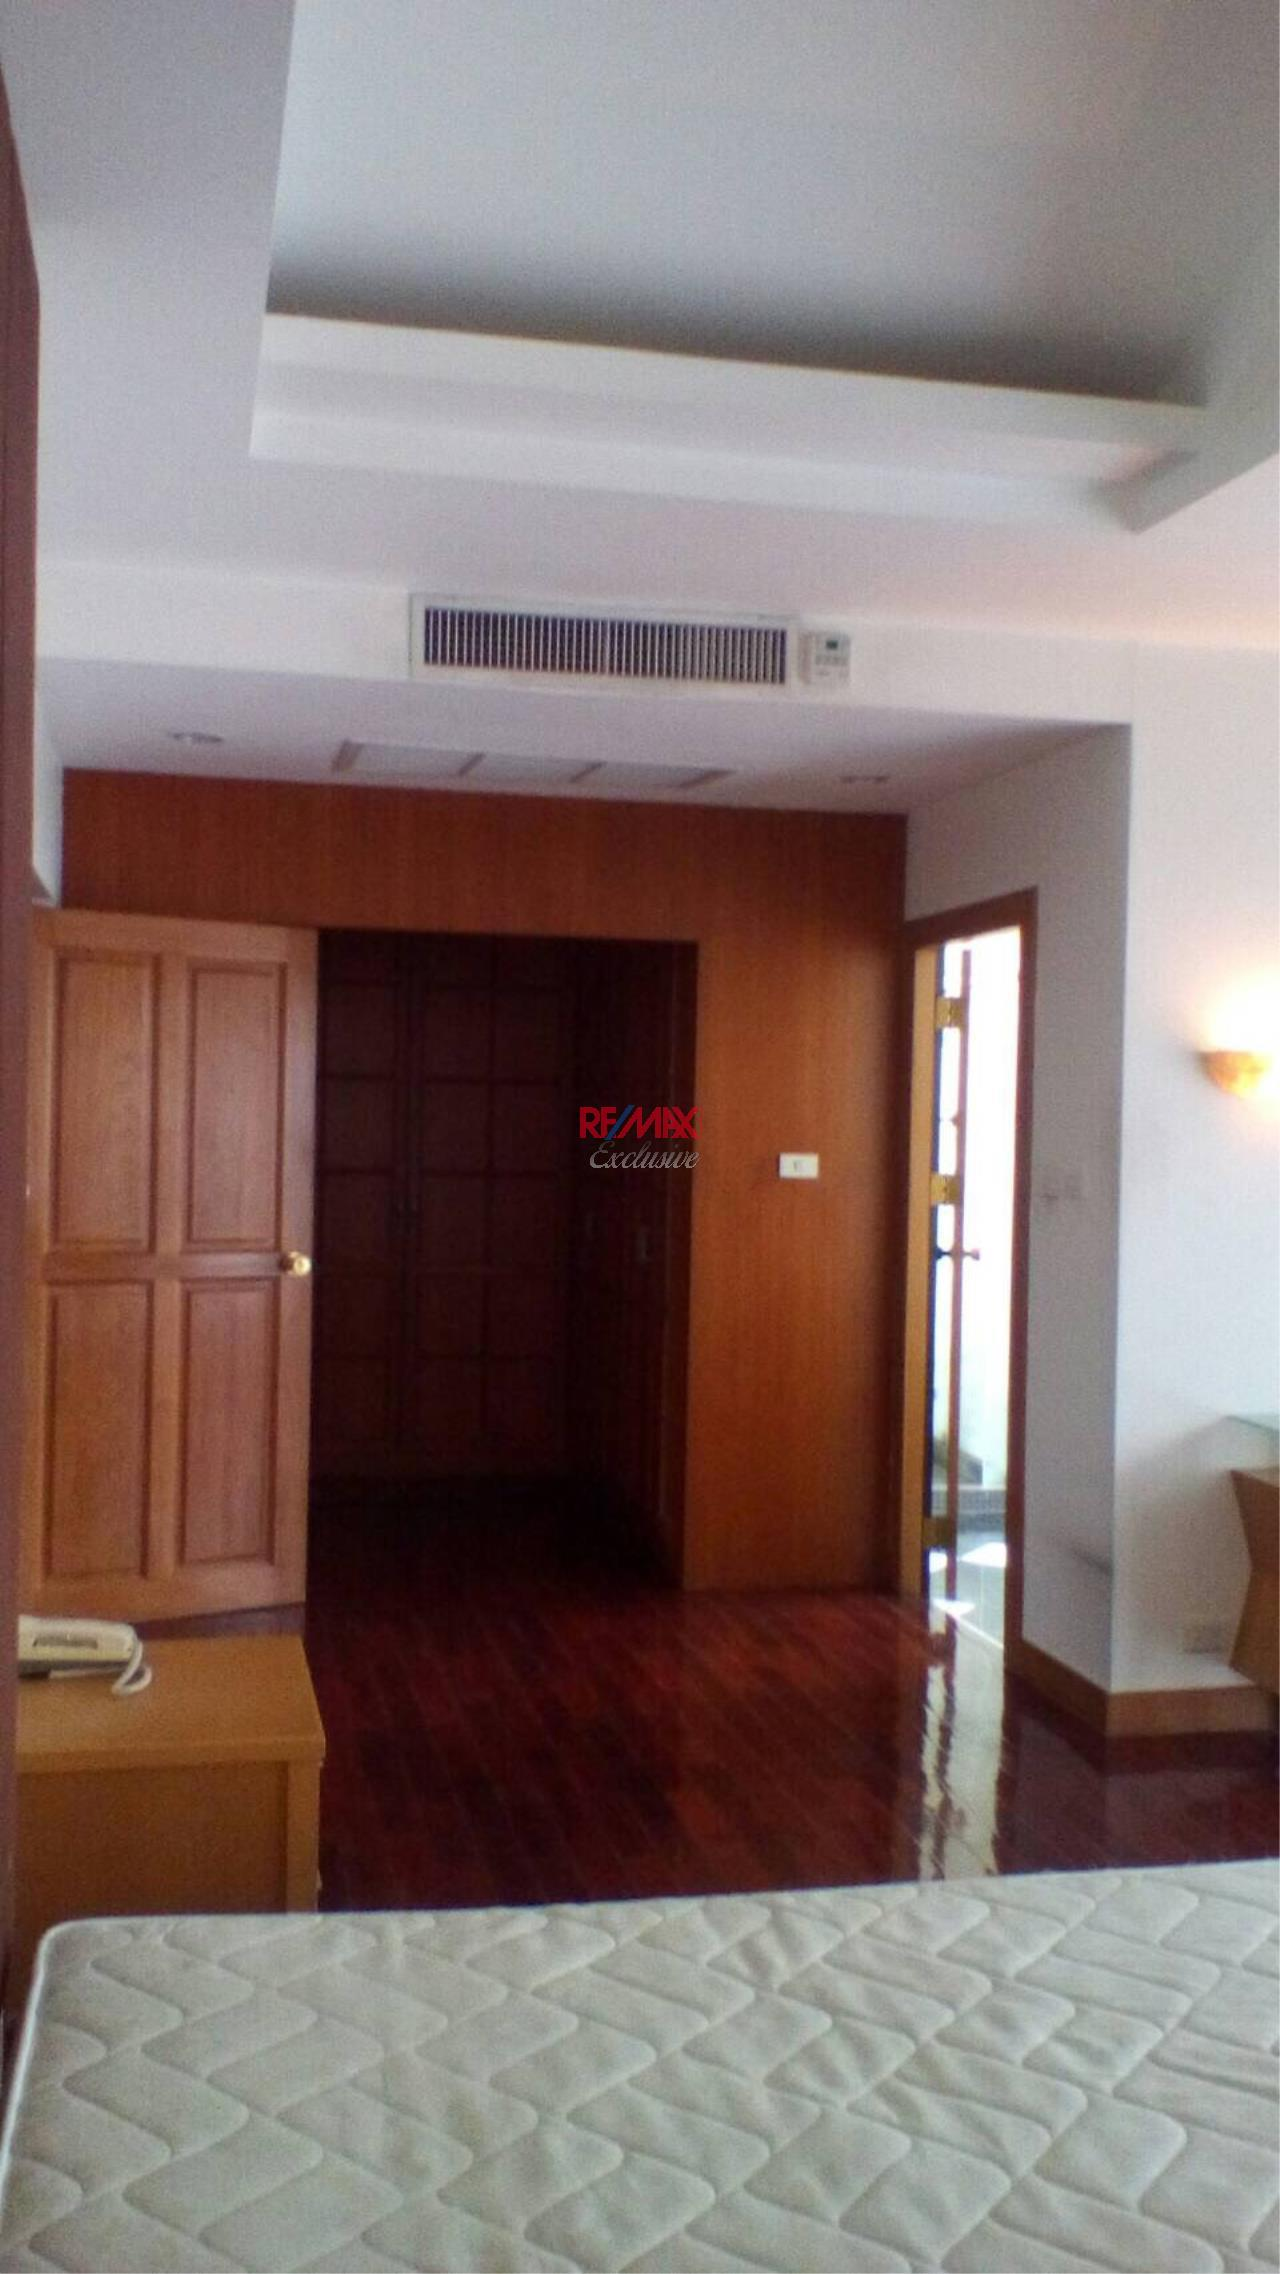 RE/MAX Exclusive Agency's Detached House 4 Bedrooms 200 Sq wah with Private Pool, For Rent 150,000 THB!! 15